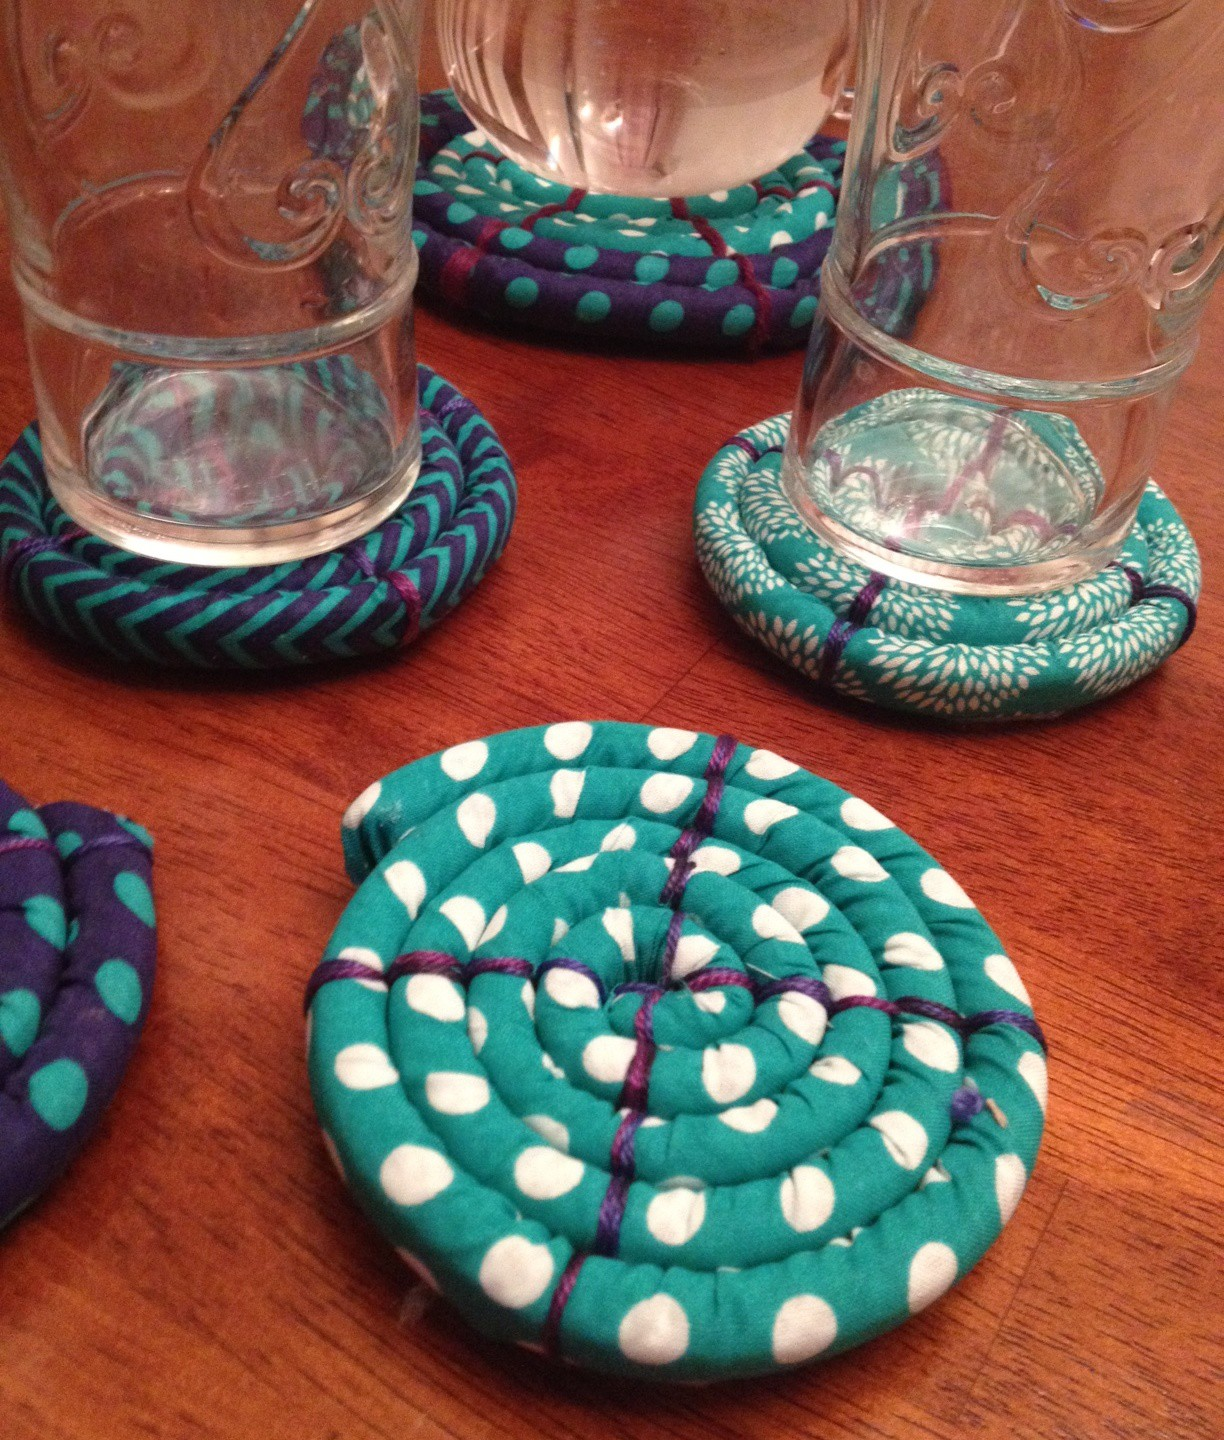 Wrap 'n Fuse Coiled Coasters | Clover Needlecraft